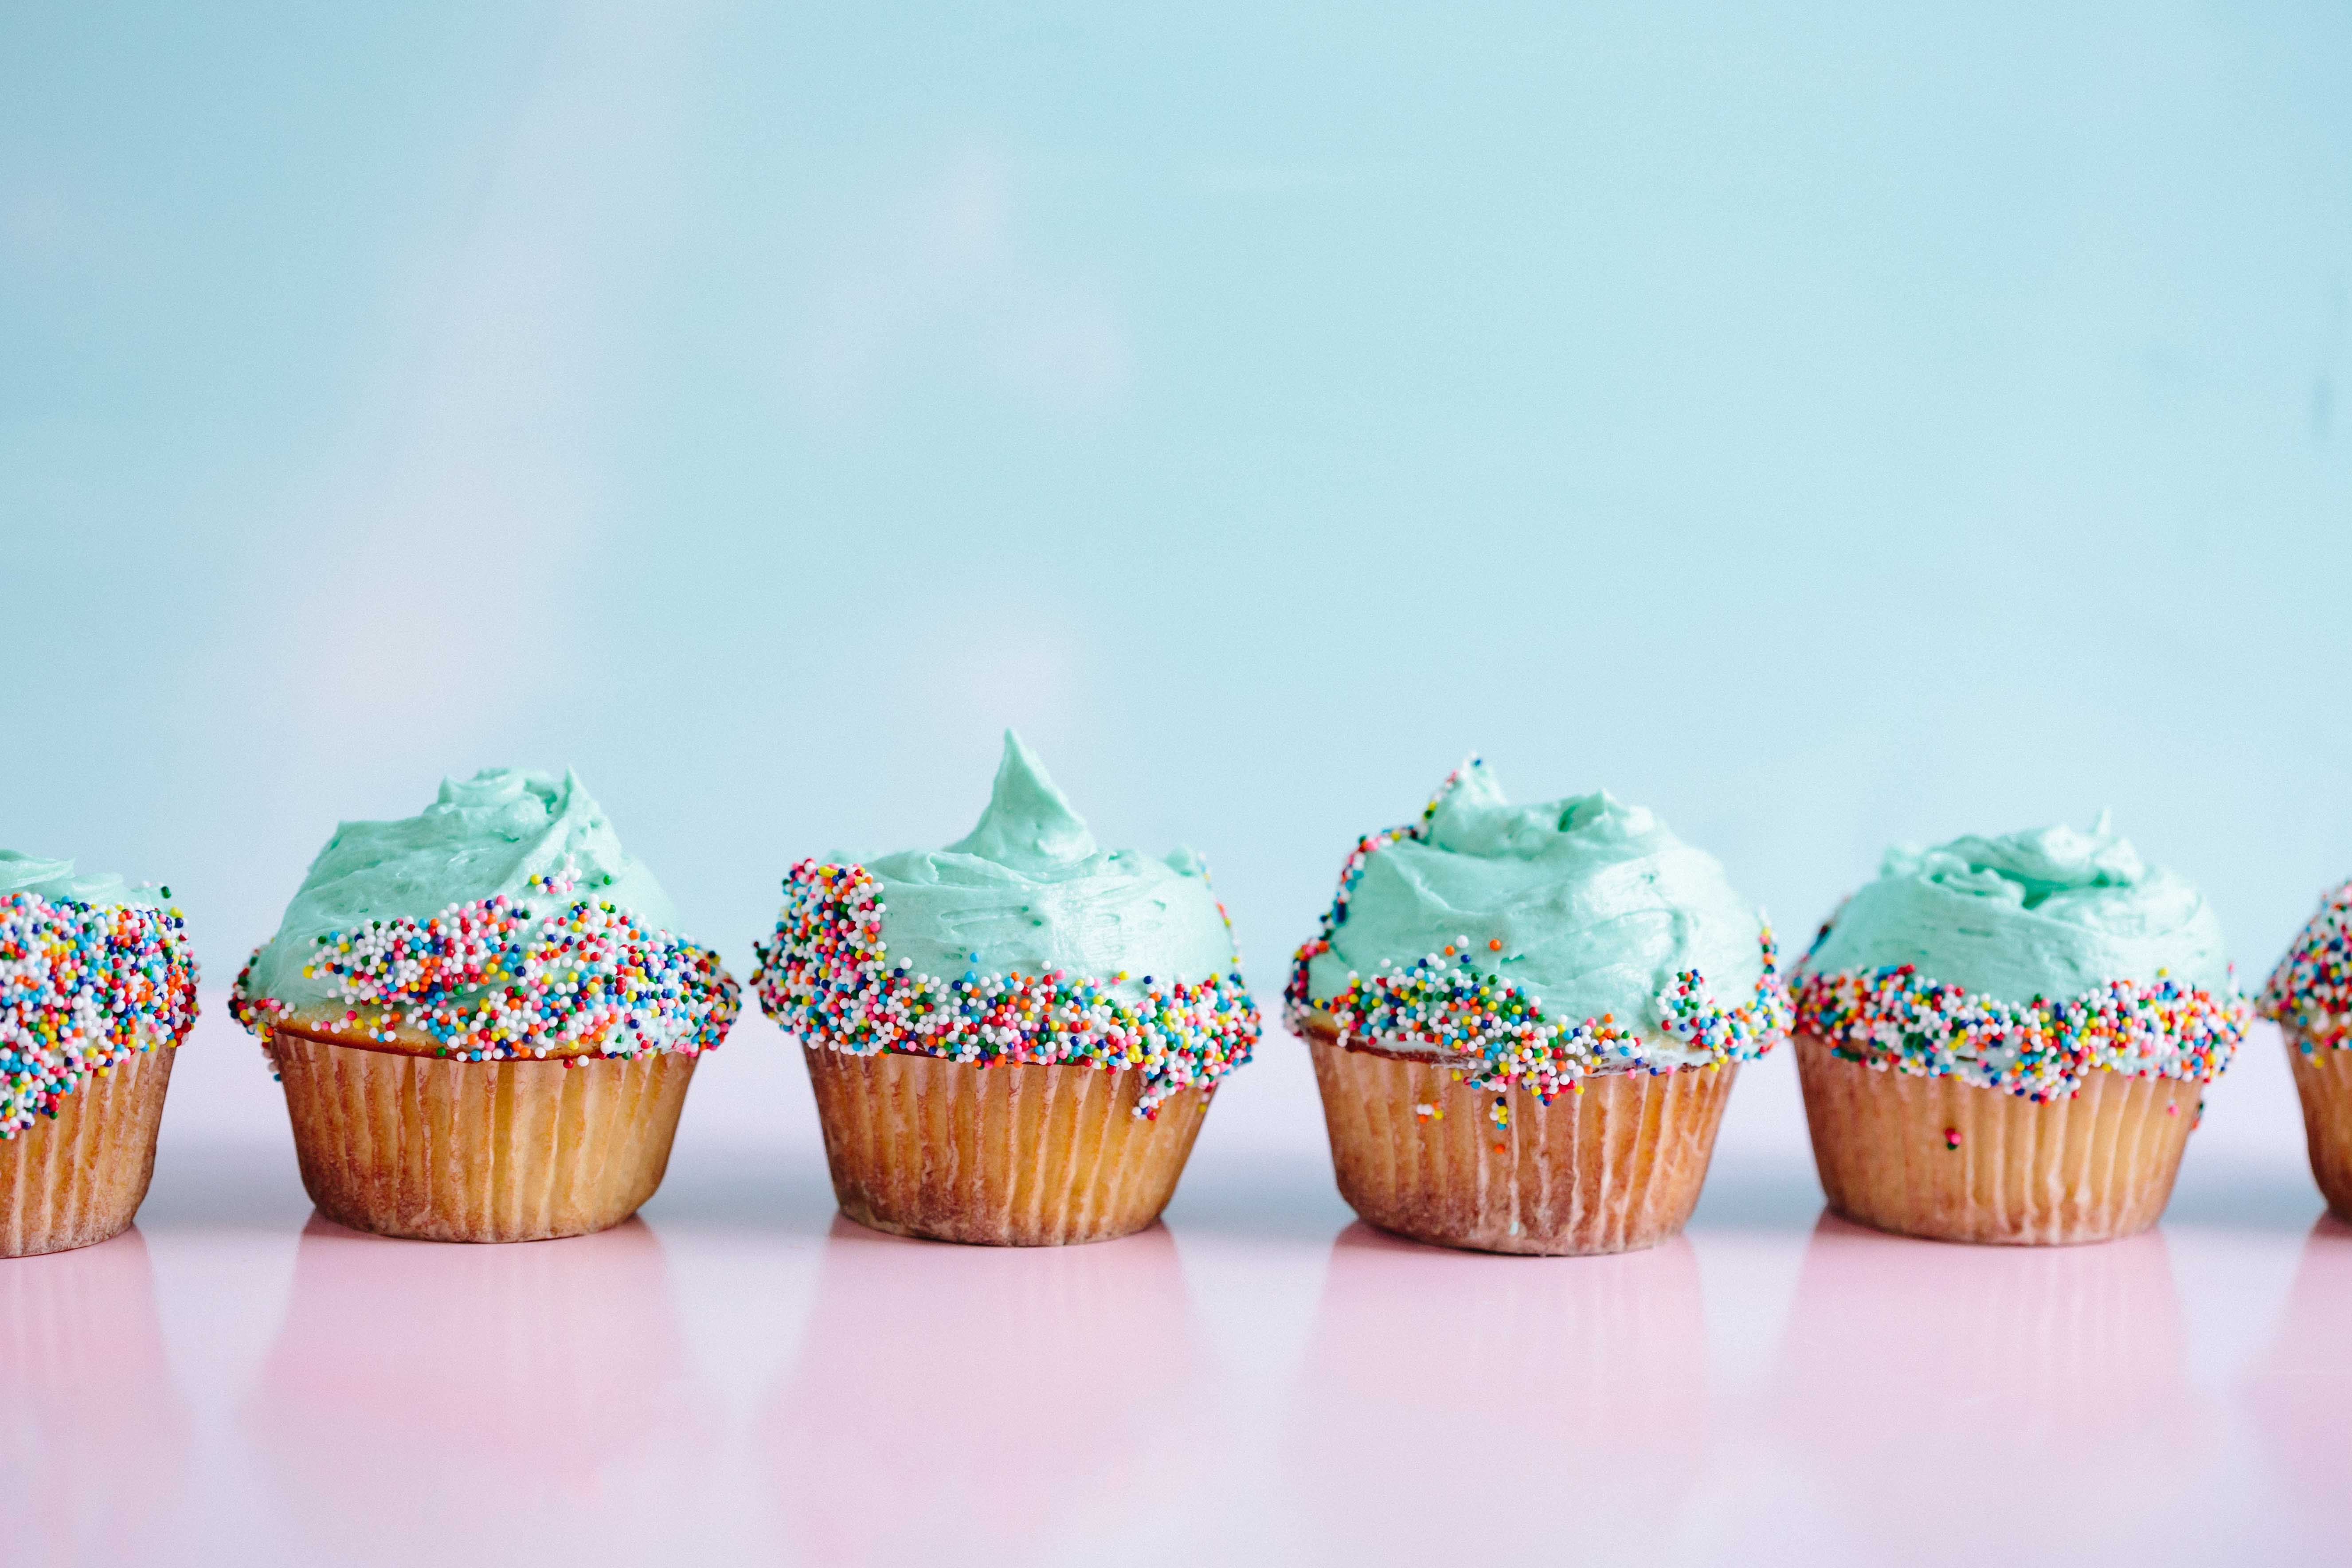 Row of cupcakes decorated with blue frosting and rainbow sprinkles